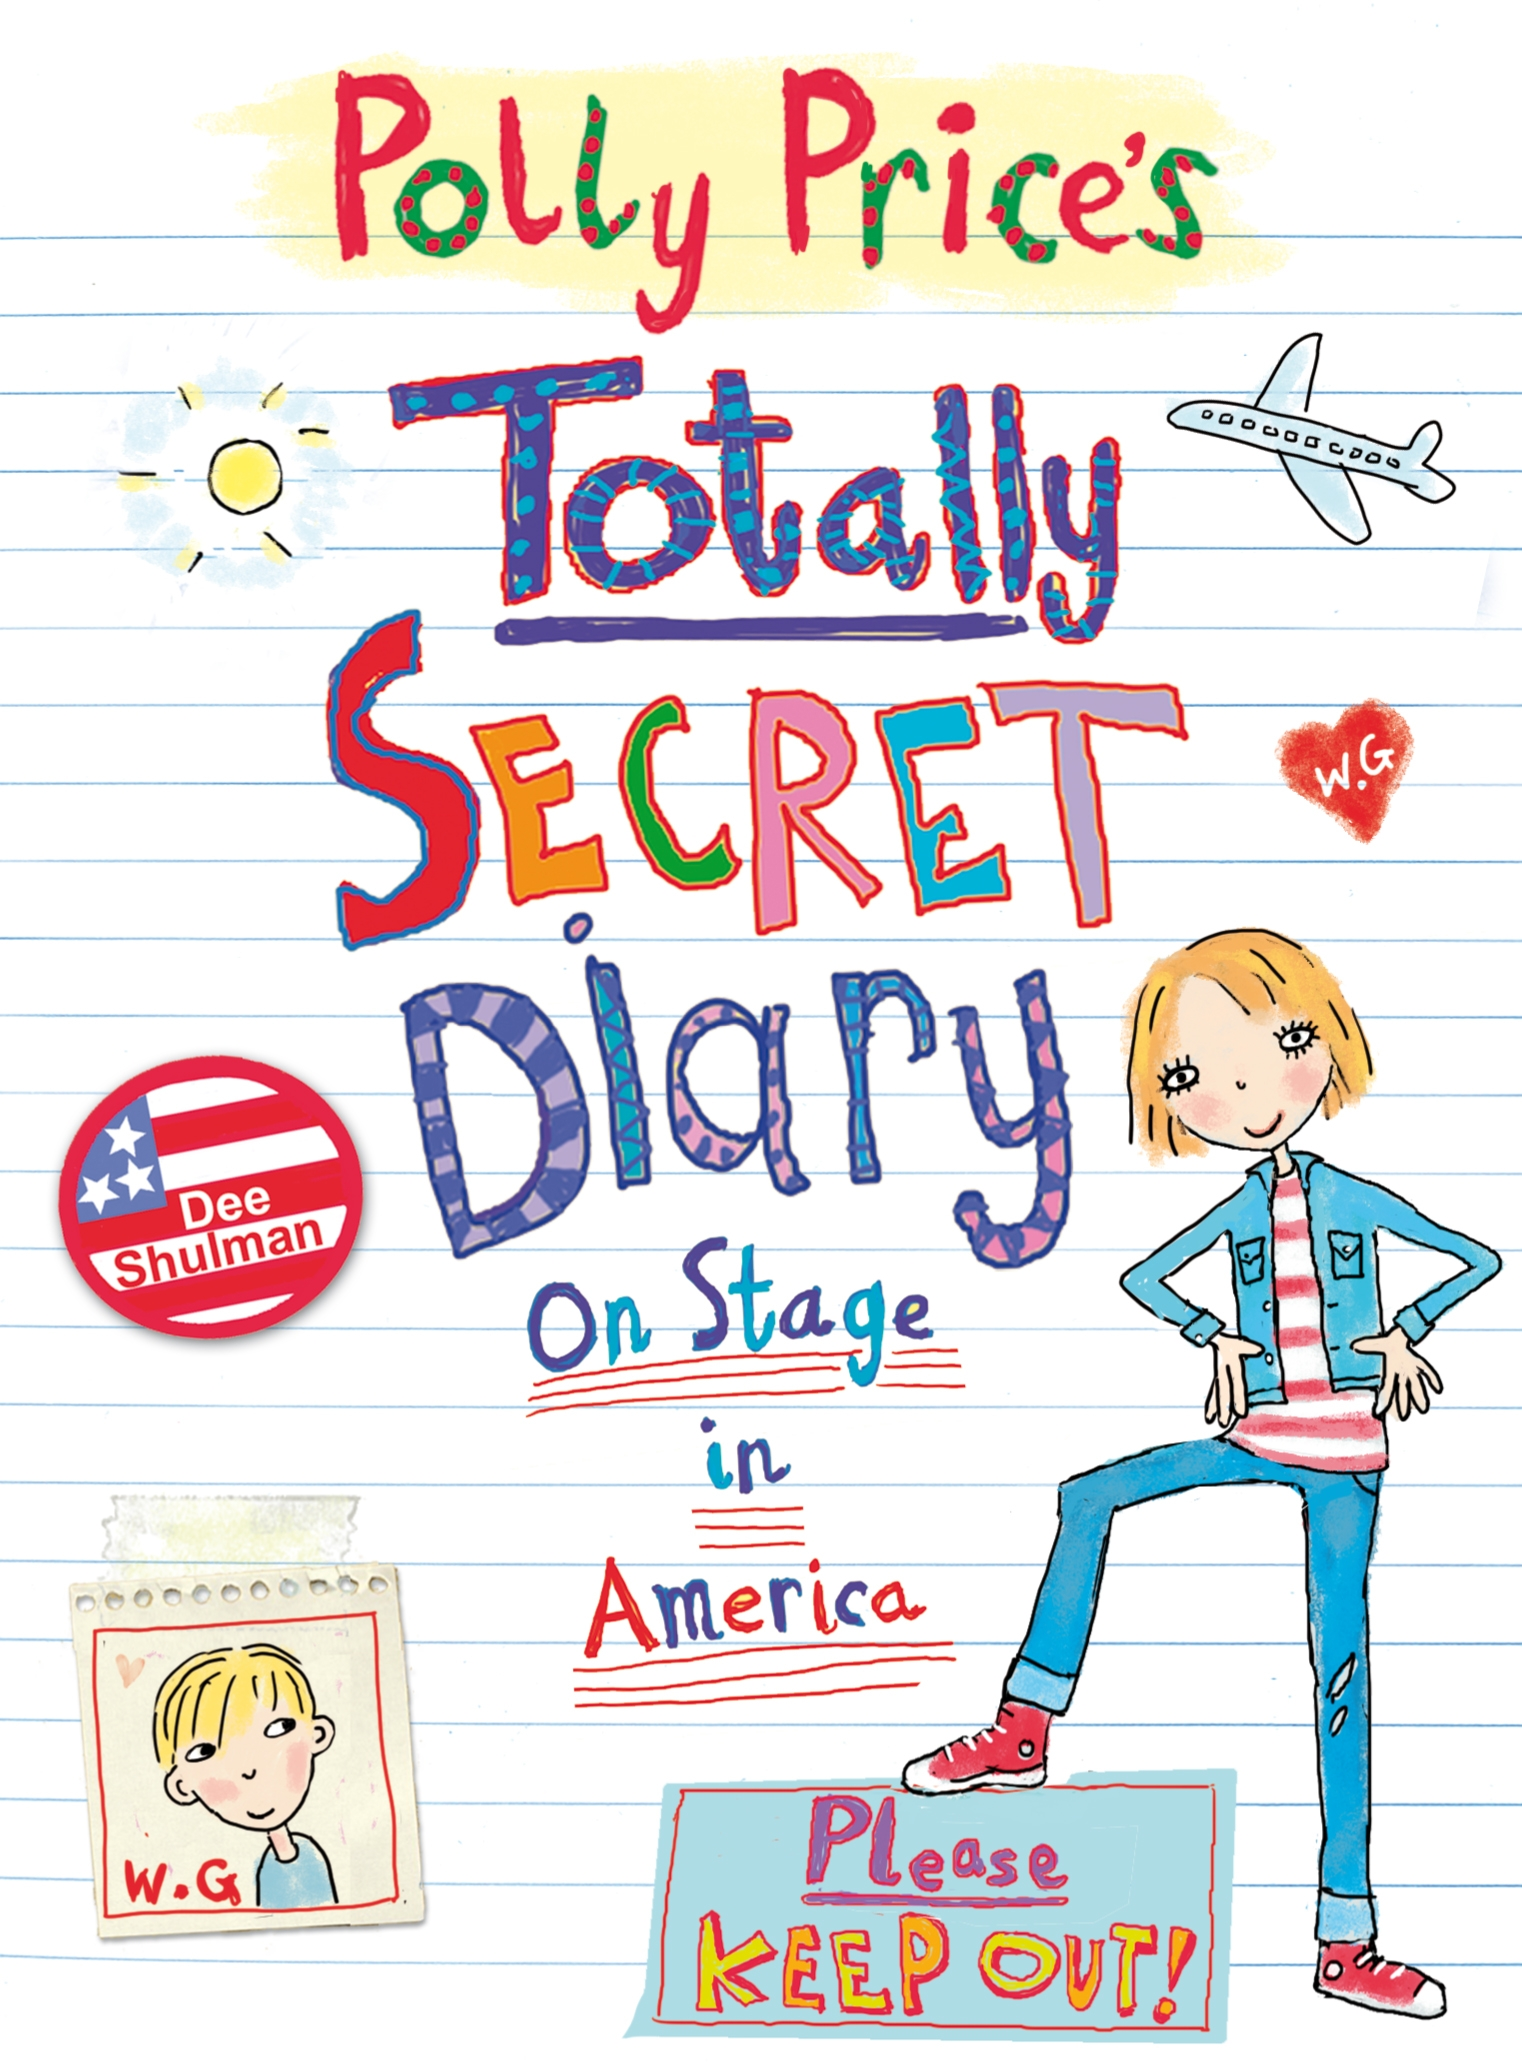 Polly Price's Totally Secret Diary: On Stage in America. By Dee Shulman